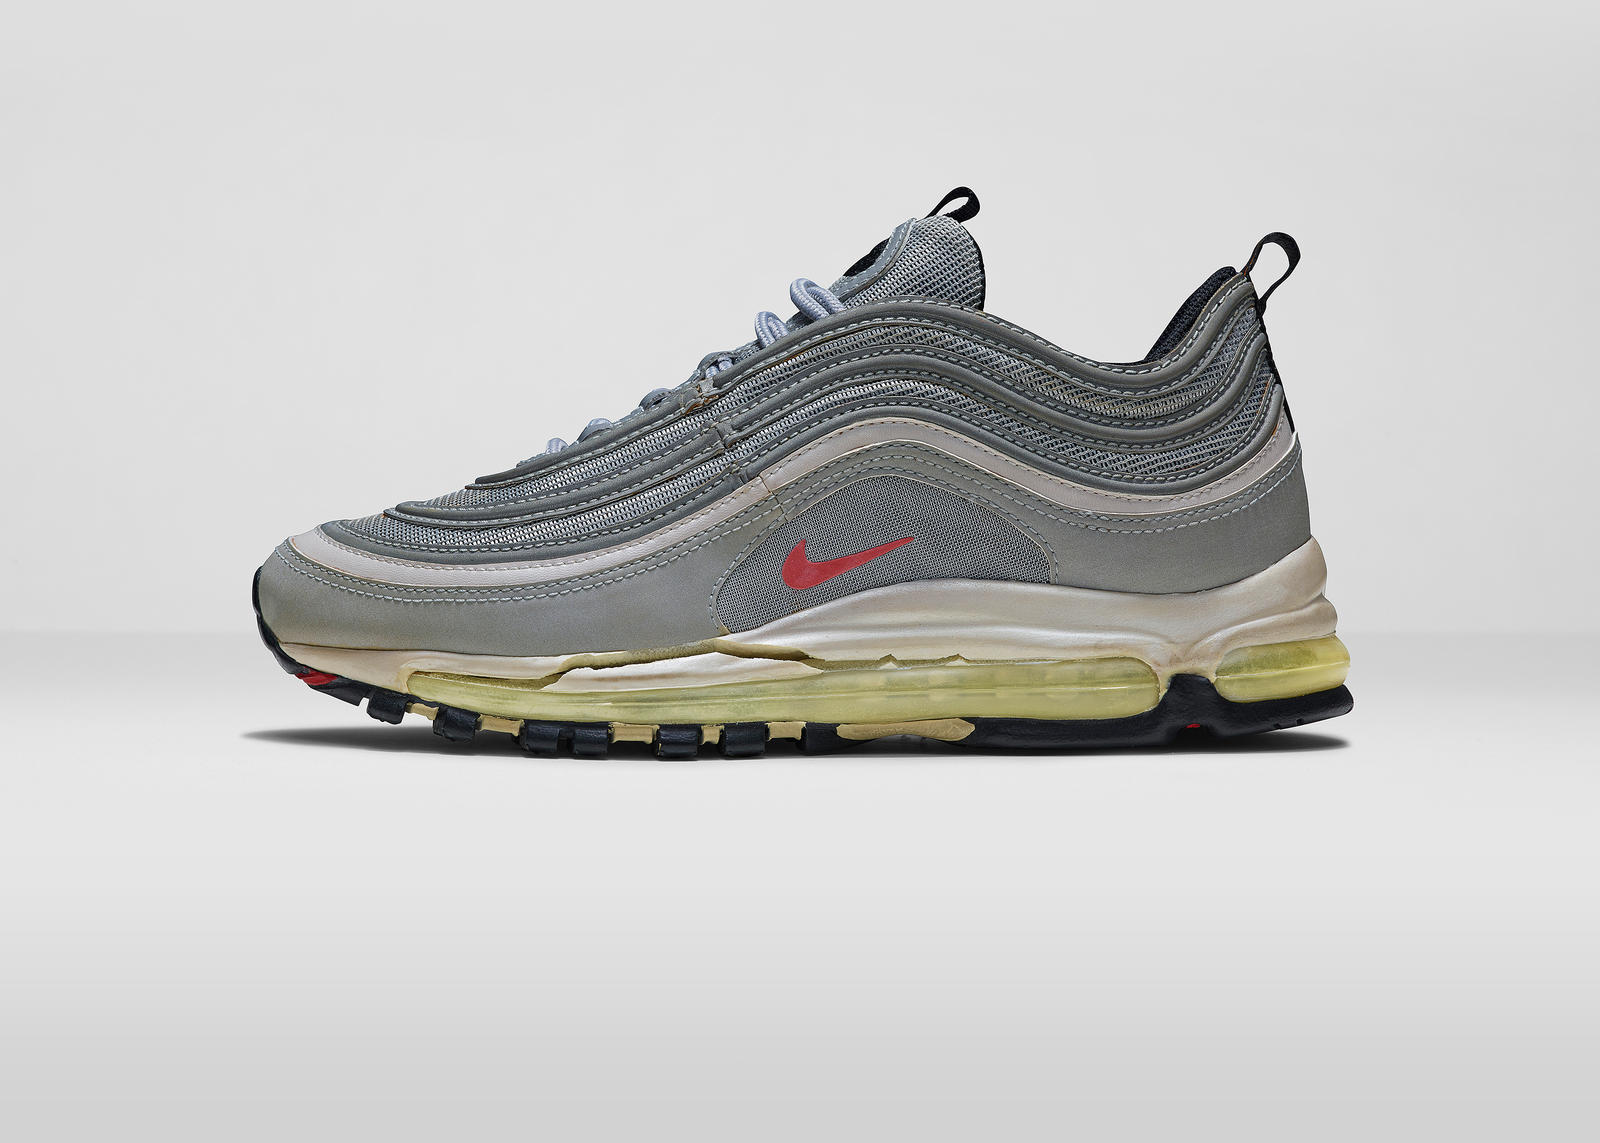 premium selection cb101 1fce1 Air Max 97. Nike AirMaxDay 2015 1997 LAT. Nike Air Max Day 2015 ...